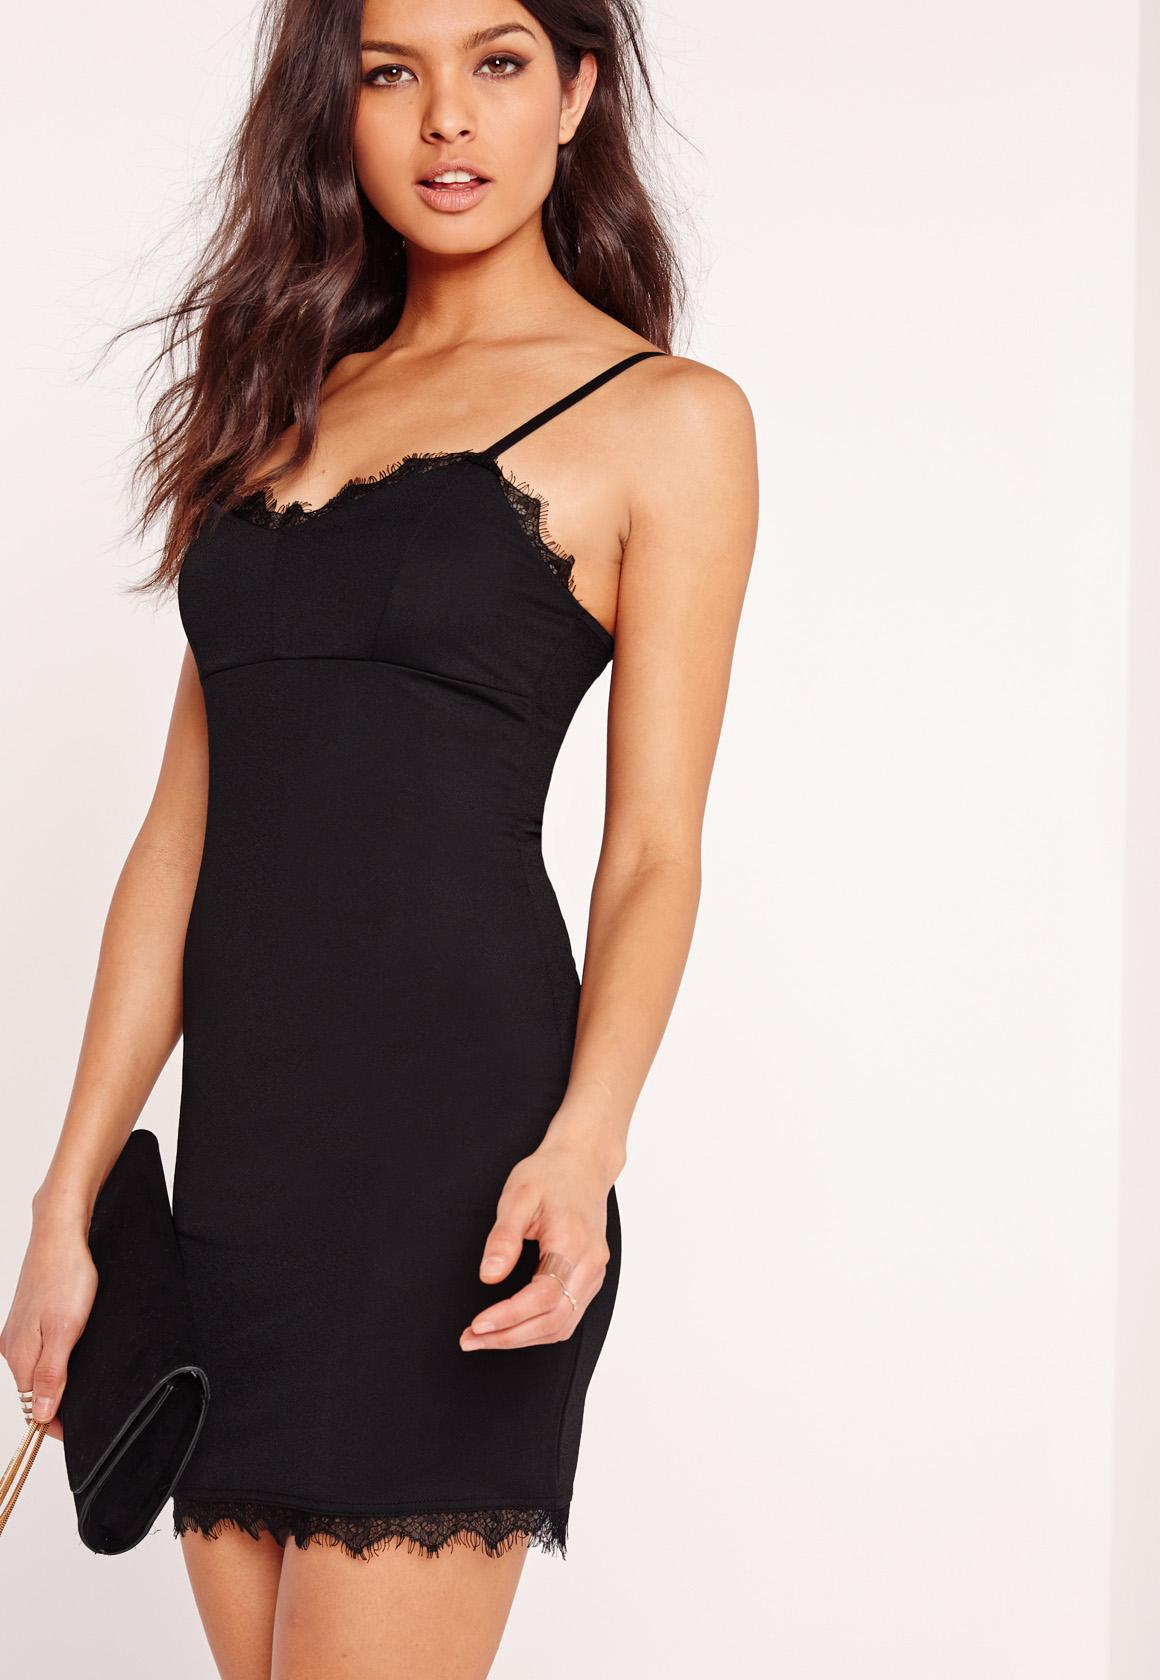 Lace Trim Strappy Bodycon Dress Black | Missguided